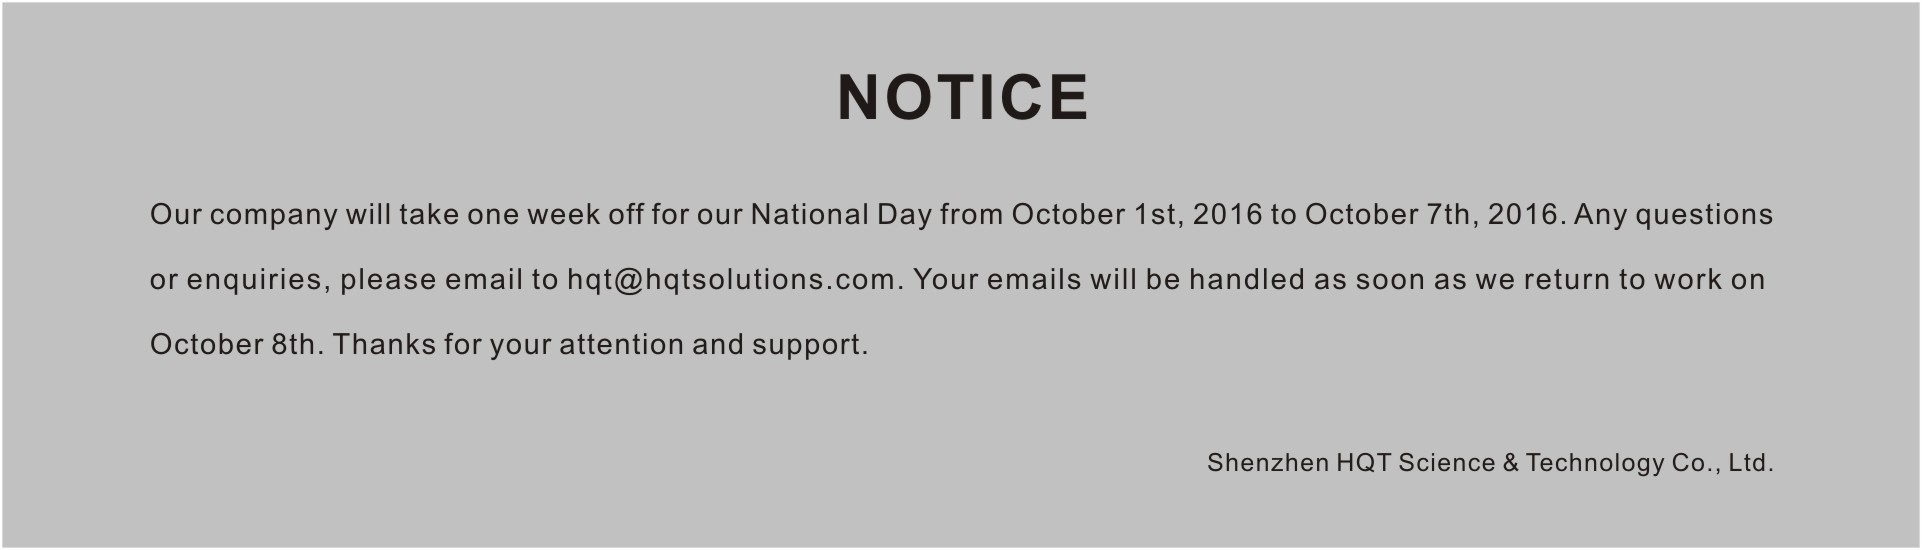 Notice of Holiday for China's National Day